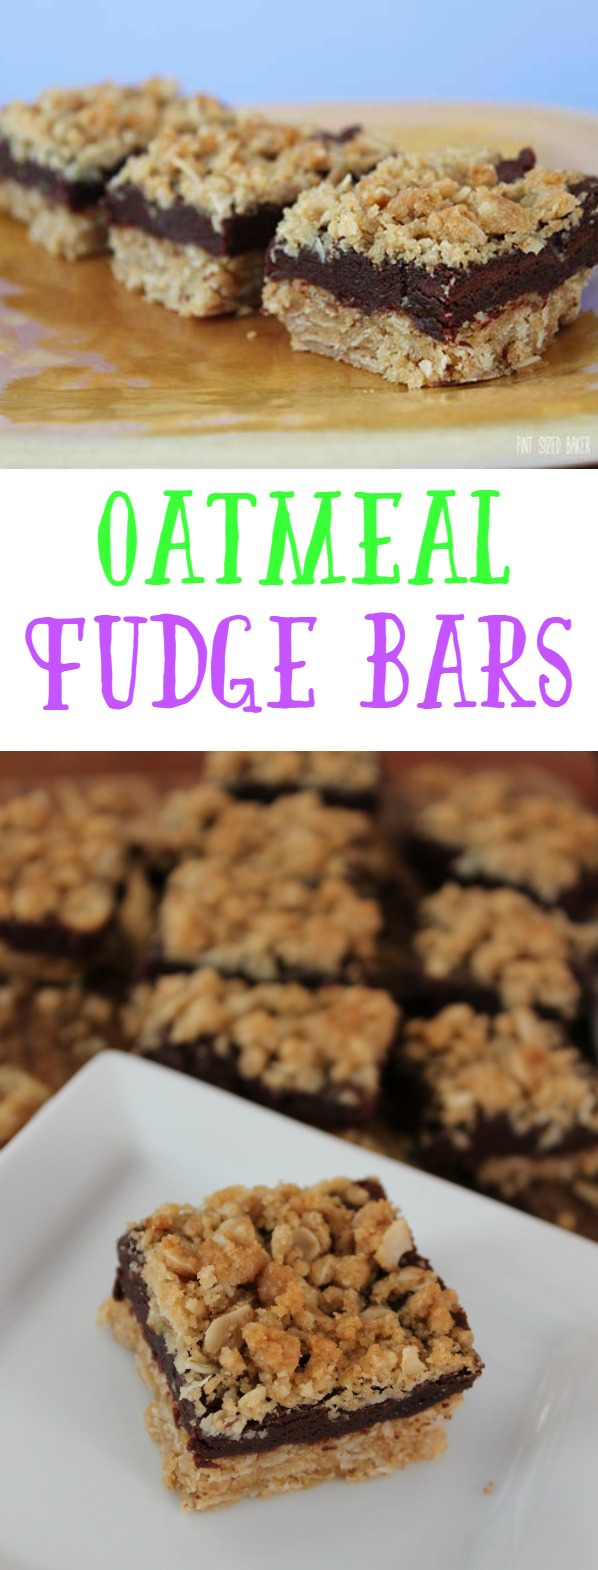 Oatmeal Fudge Bars that are sure to put a smile on everyone's face! We love them!